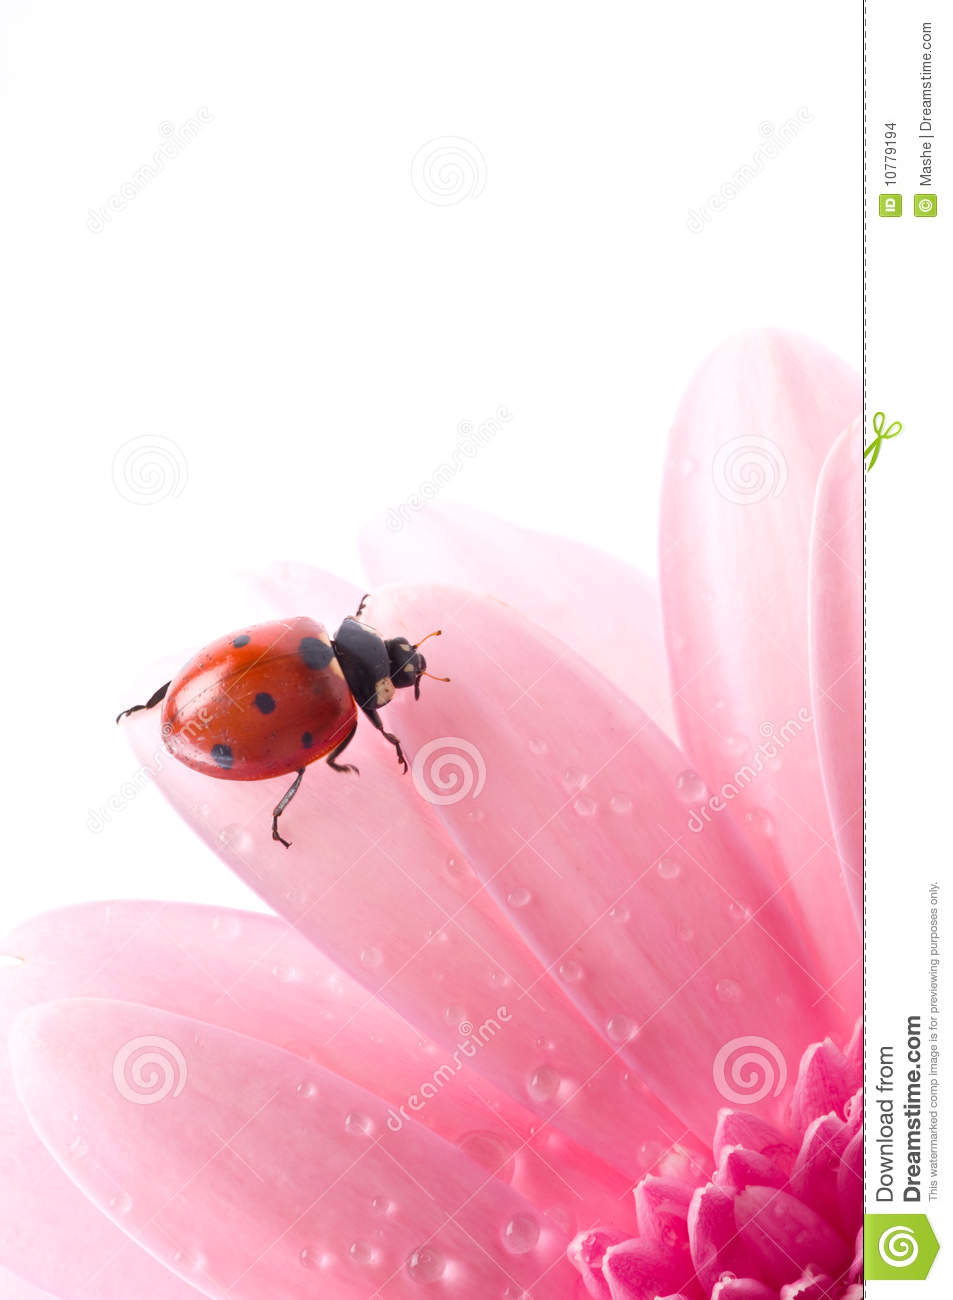 Flower petal with lady bug